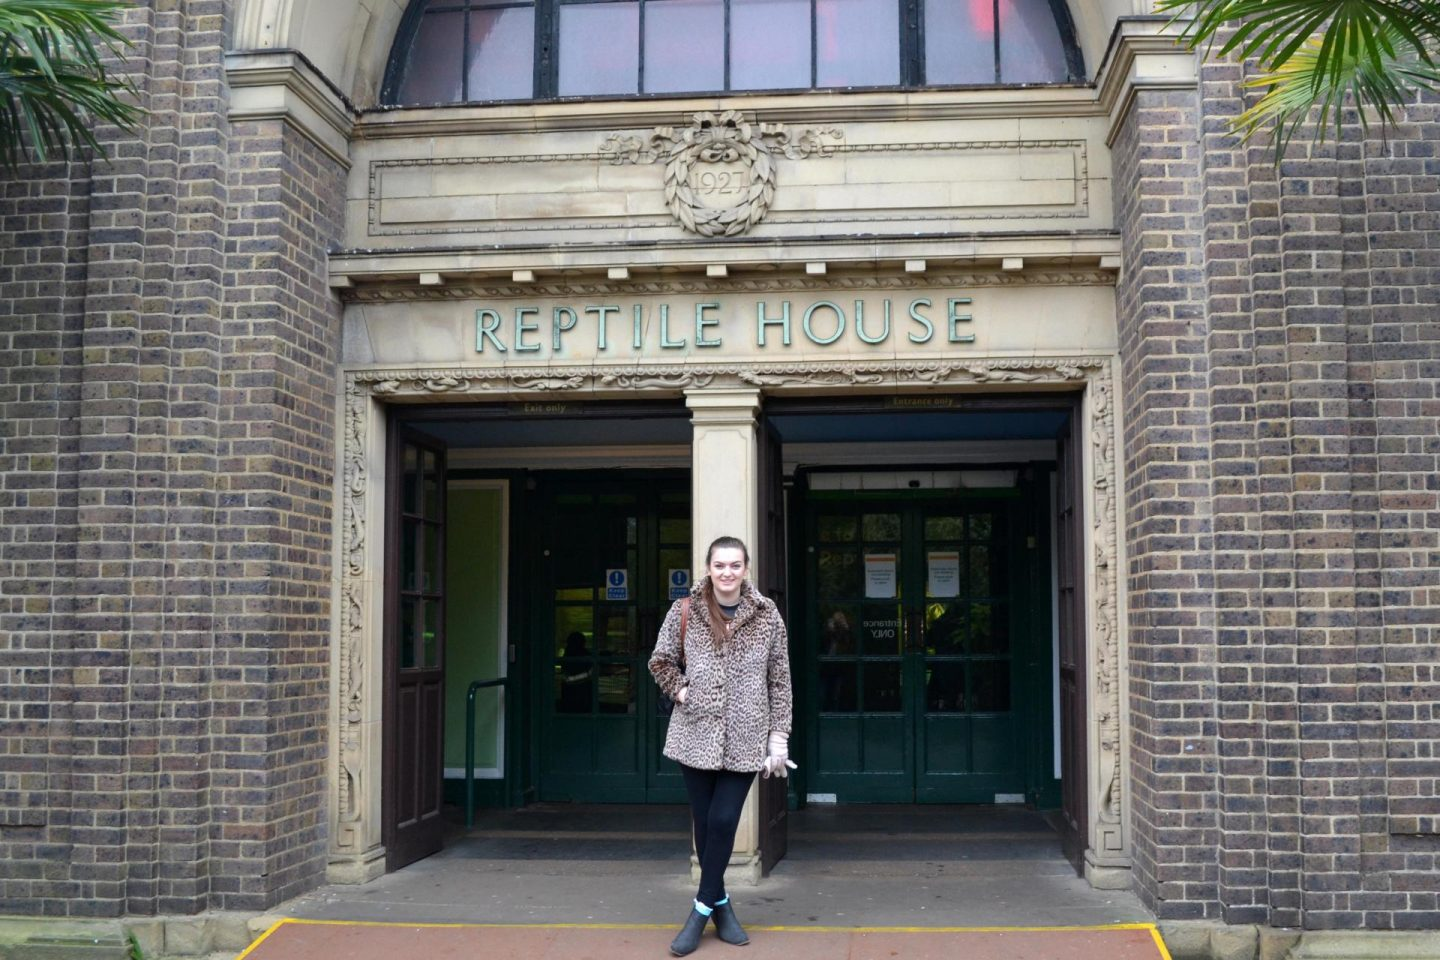 places-to-visit-in-london-if-youre-a-harry-potter-fan-rachel-nicole-uk-travel-blogger